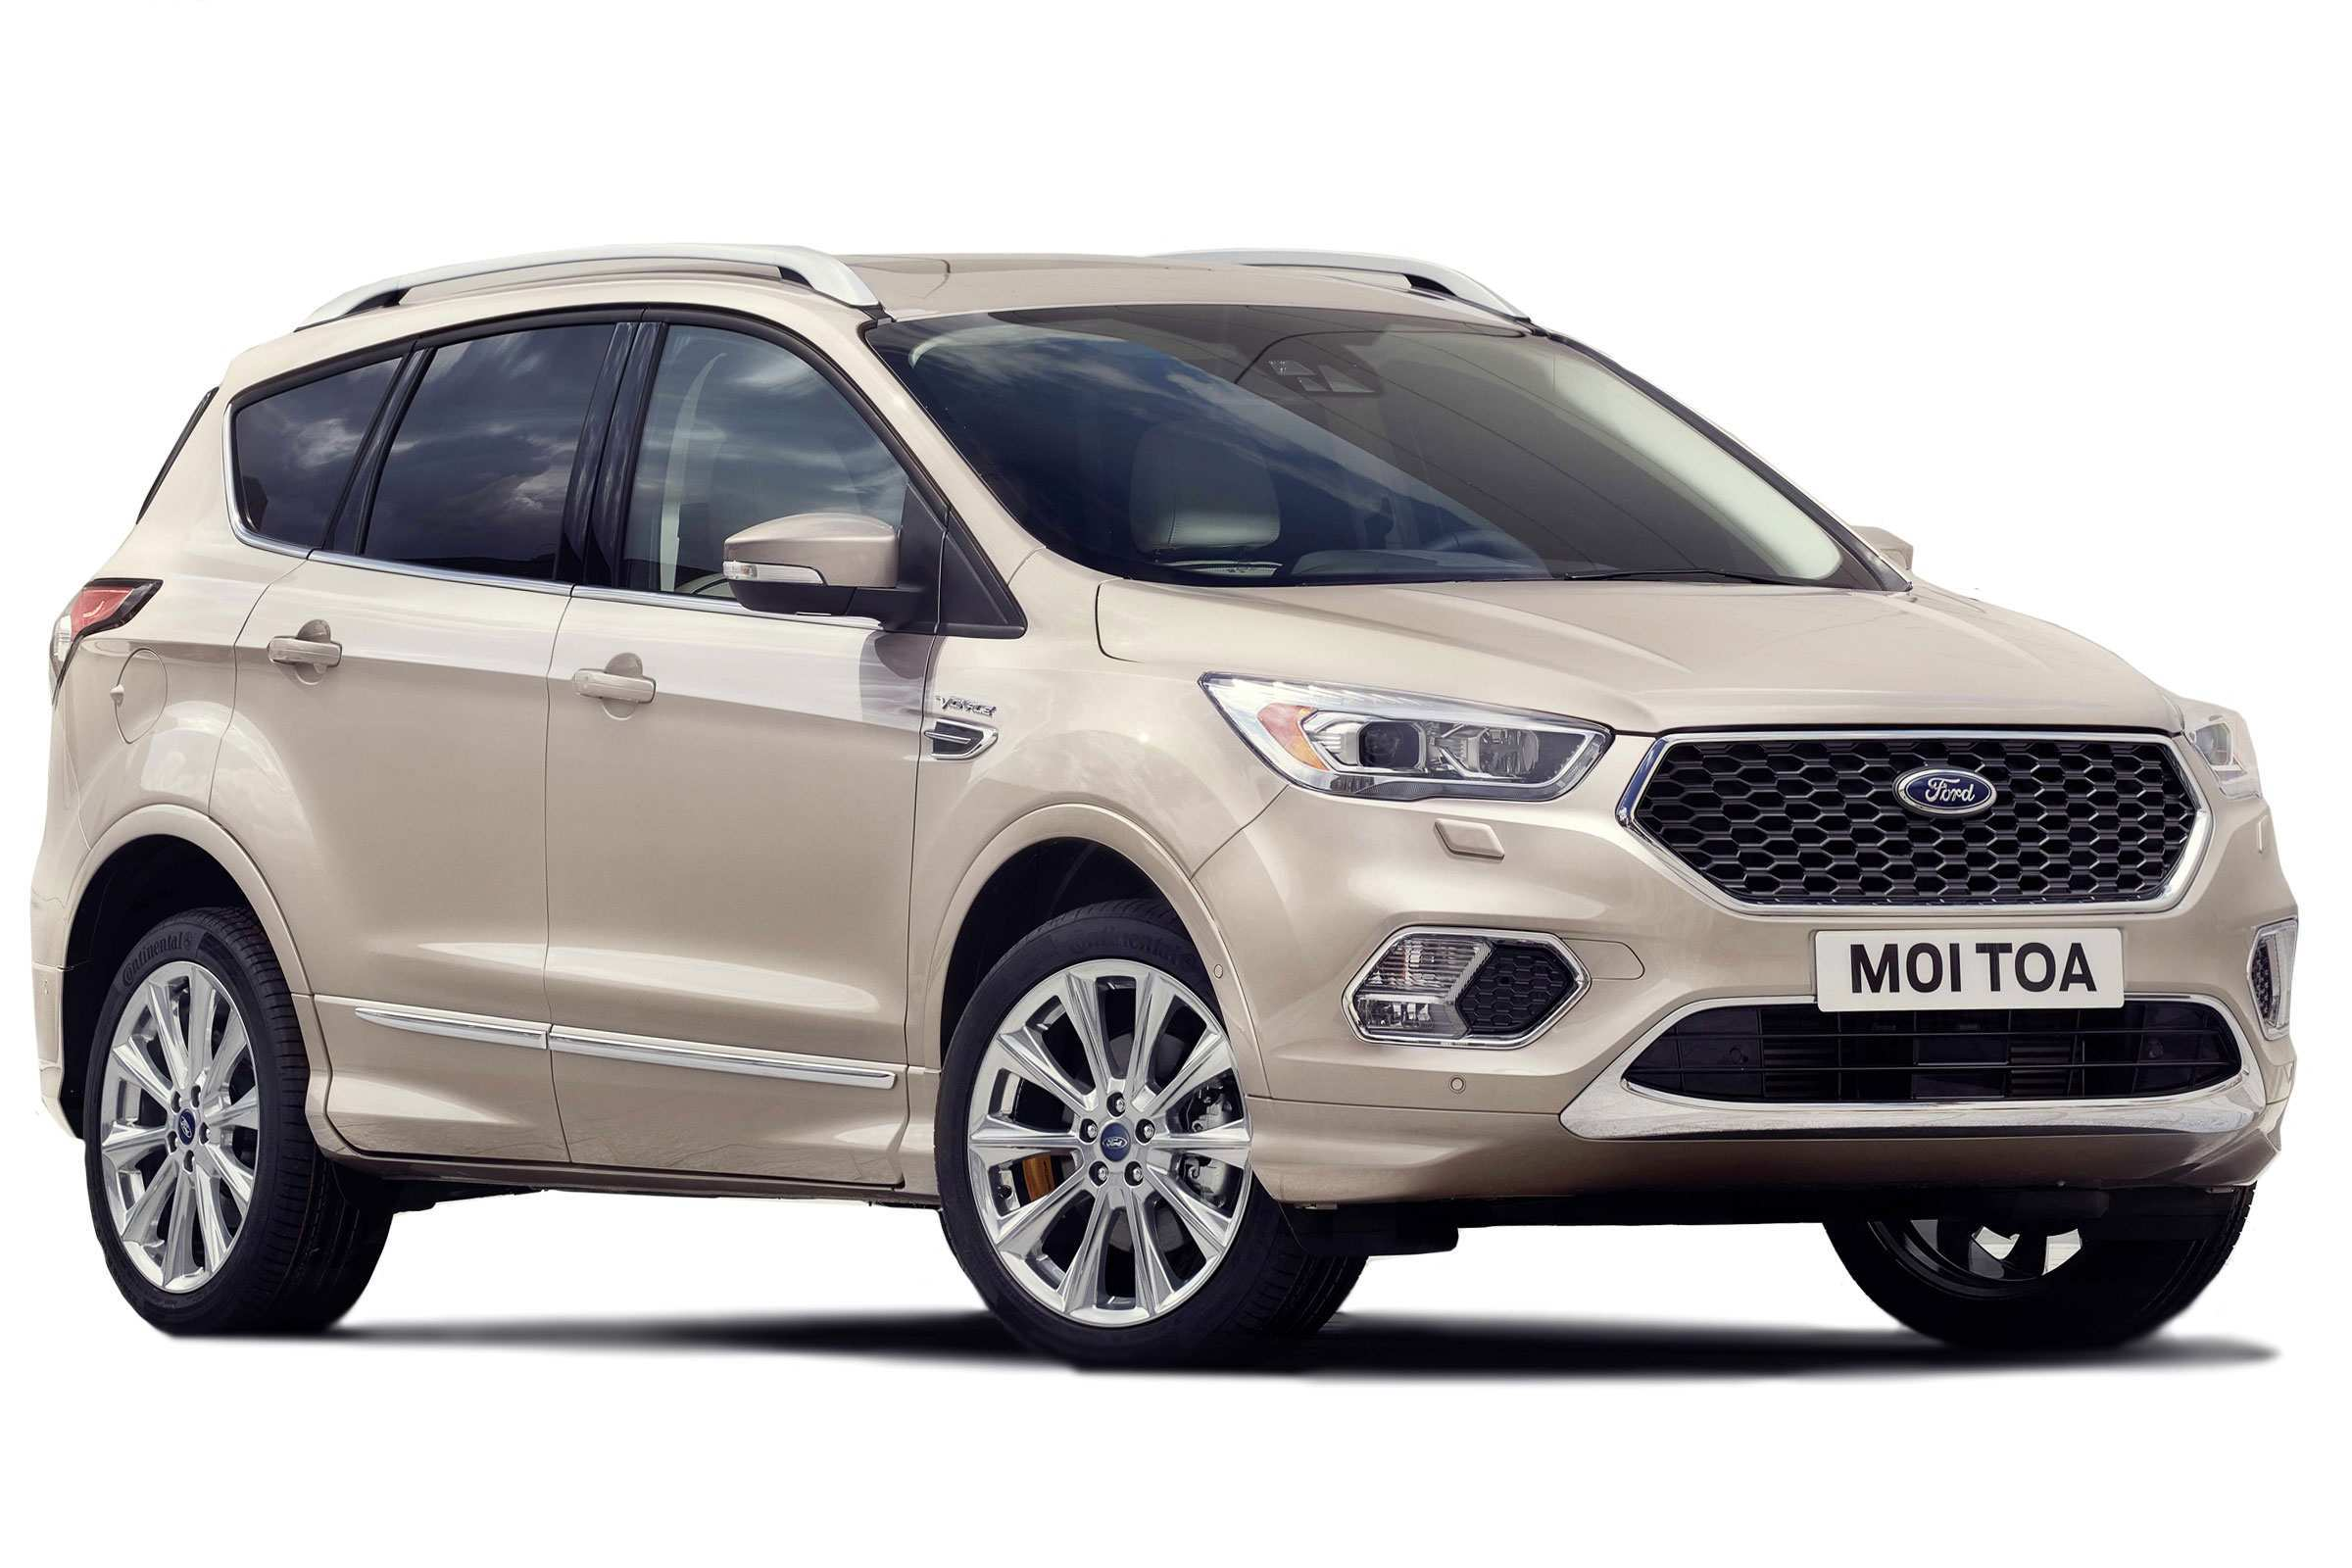 71 All New Best Ford Kuga 2019 Review And Release Date New Concept with Best Ford Kuga 2019 Review And Release Date